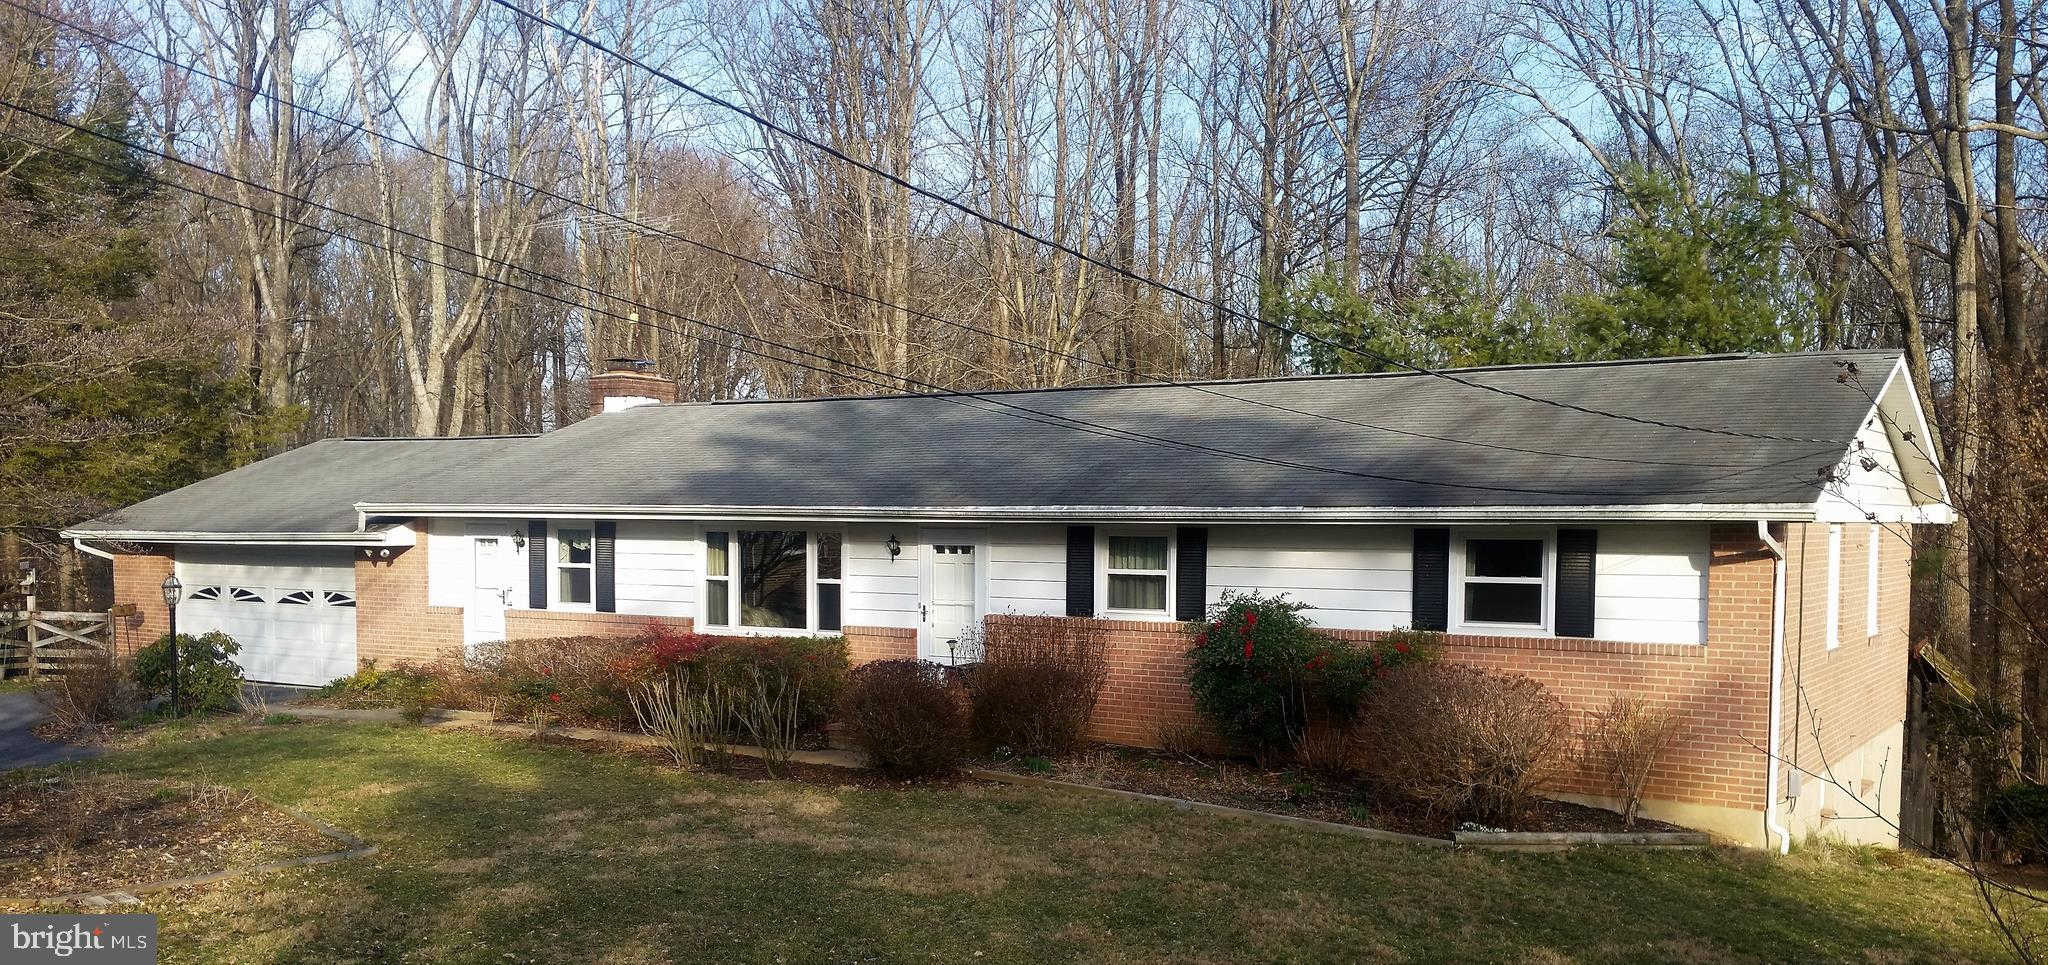 1335 Hillcrest Drive, Sykesville, MD 21784 is now new to the market!